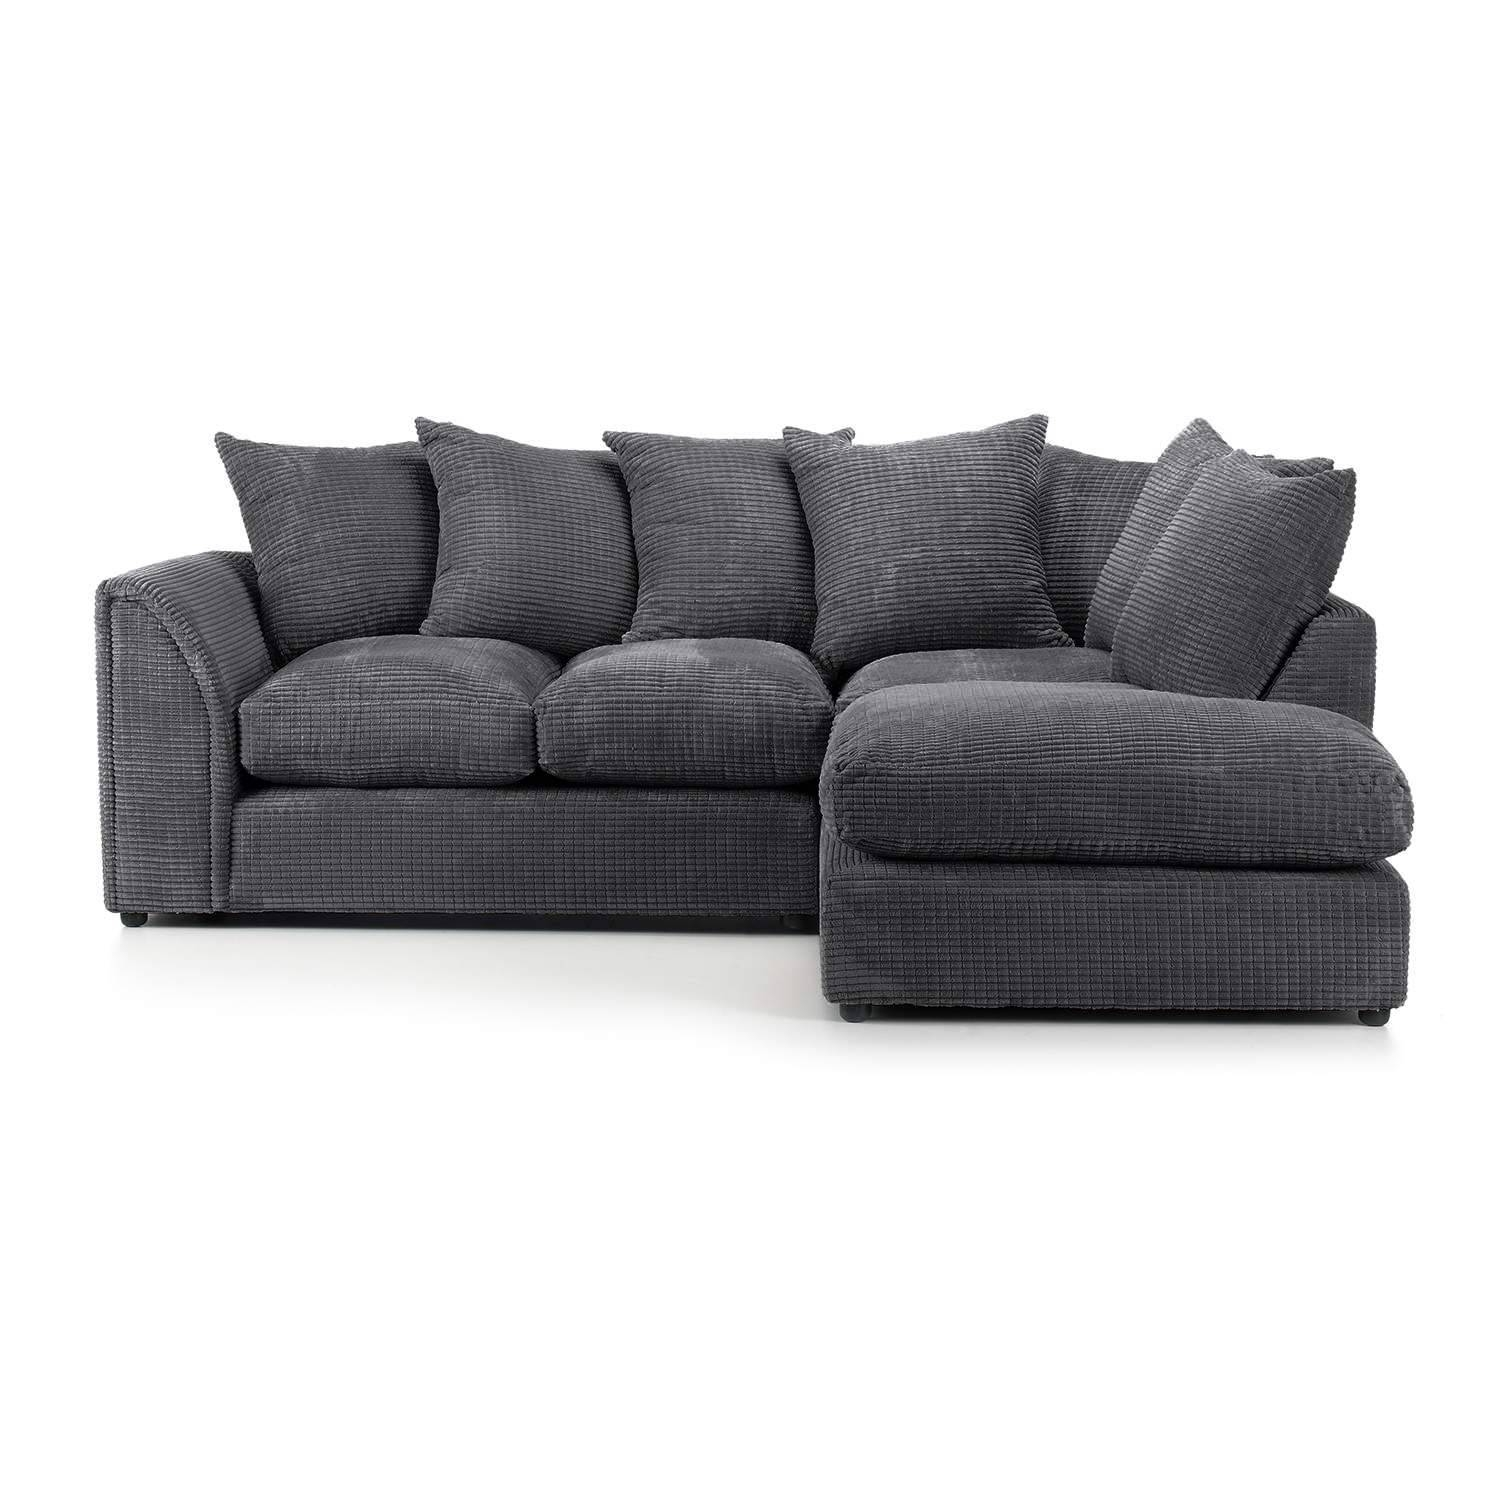 Dylan Jumbo Cord Corner Sofa – Next Day Delivery Dylan Jumbo Cord Throughout Corner Sofas (View 7 of 15)